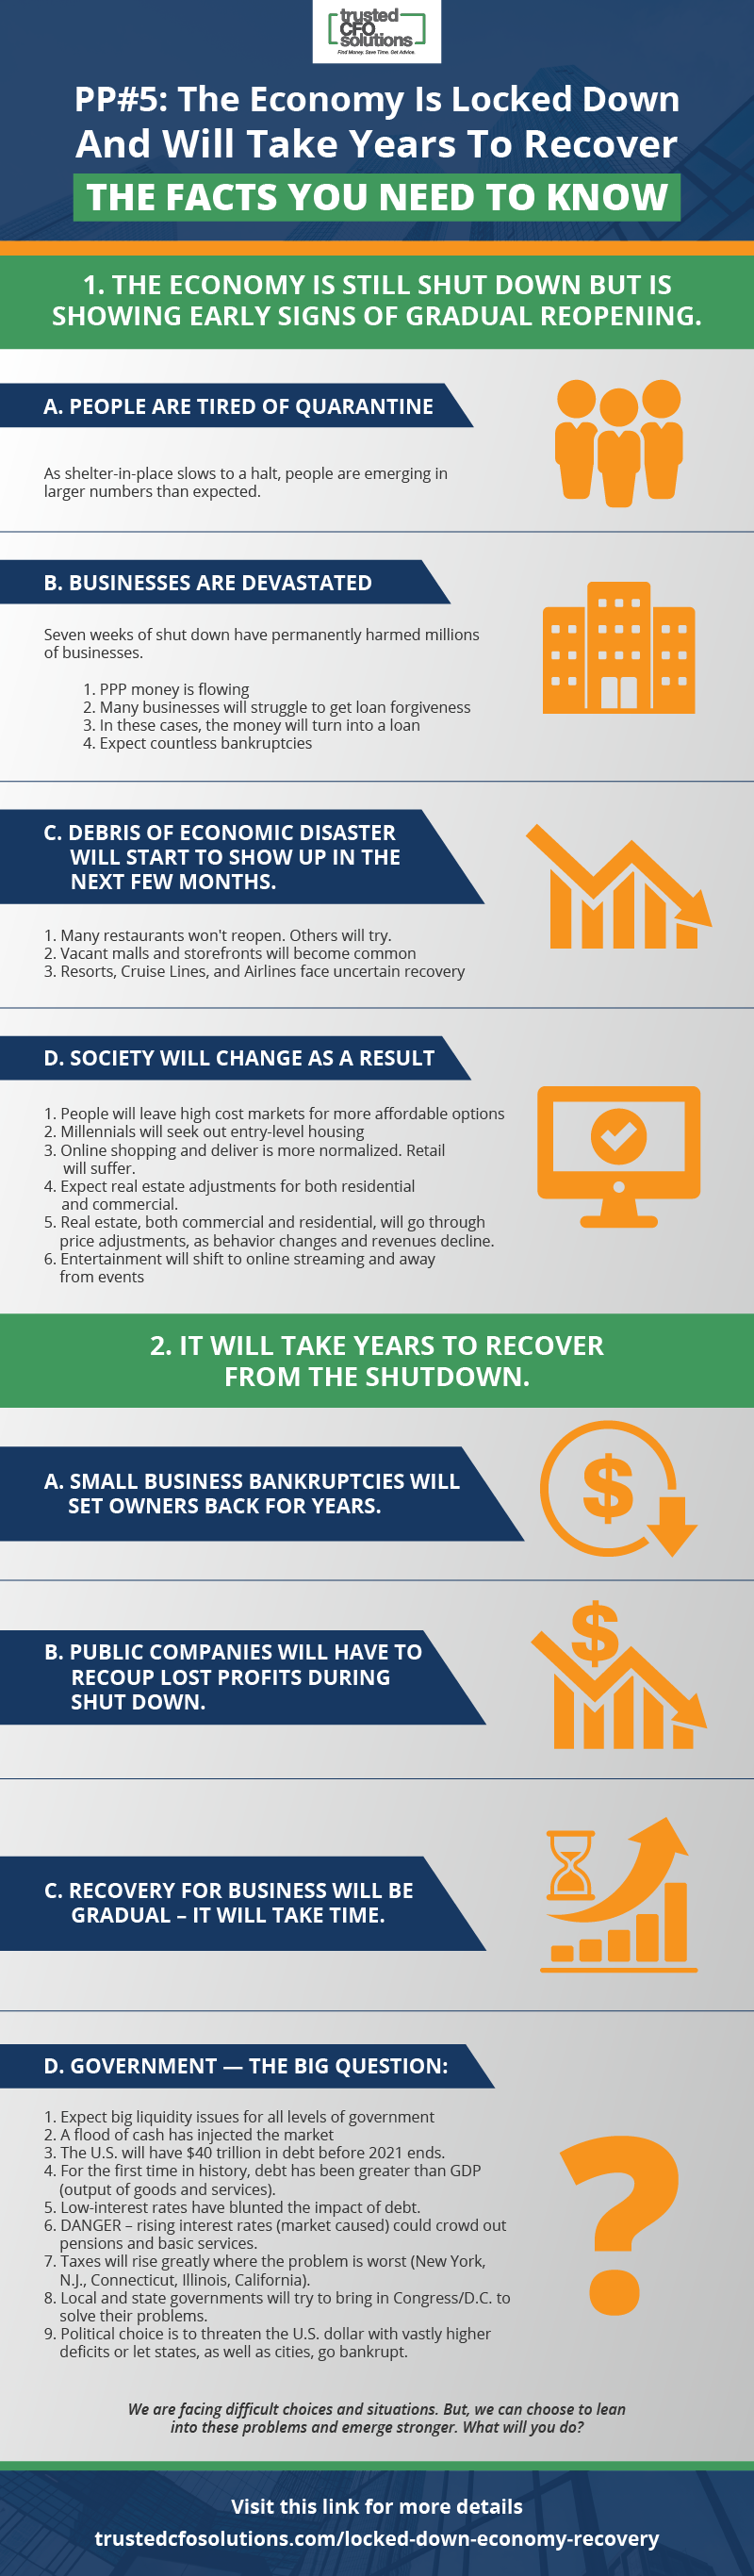 Prosper or Perish #5: Facts You Need to Know About Economy Lockdown Infographic